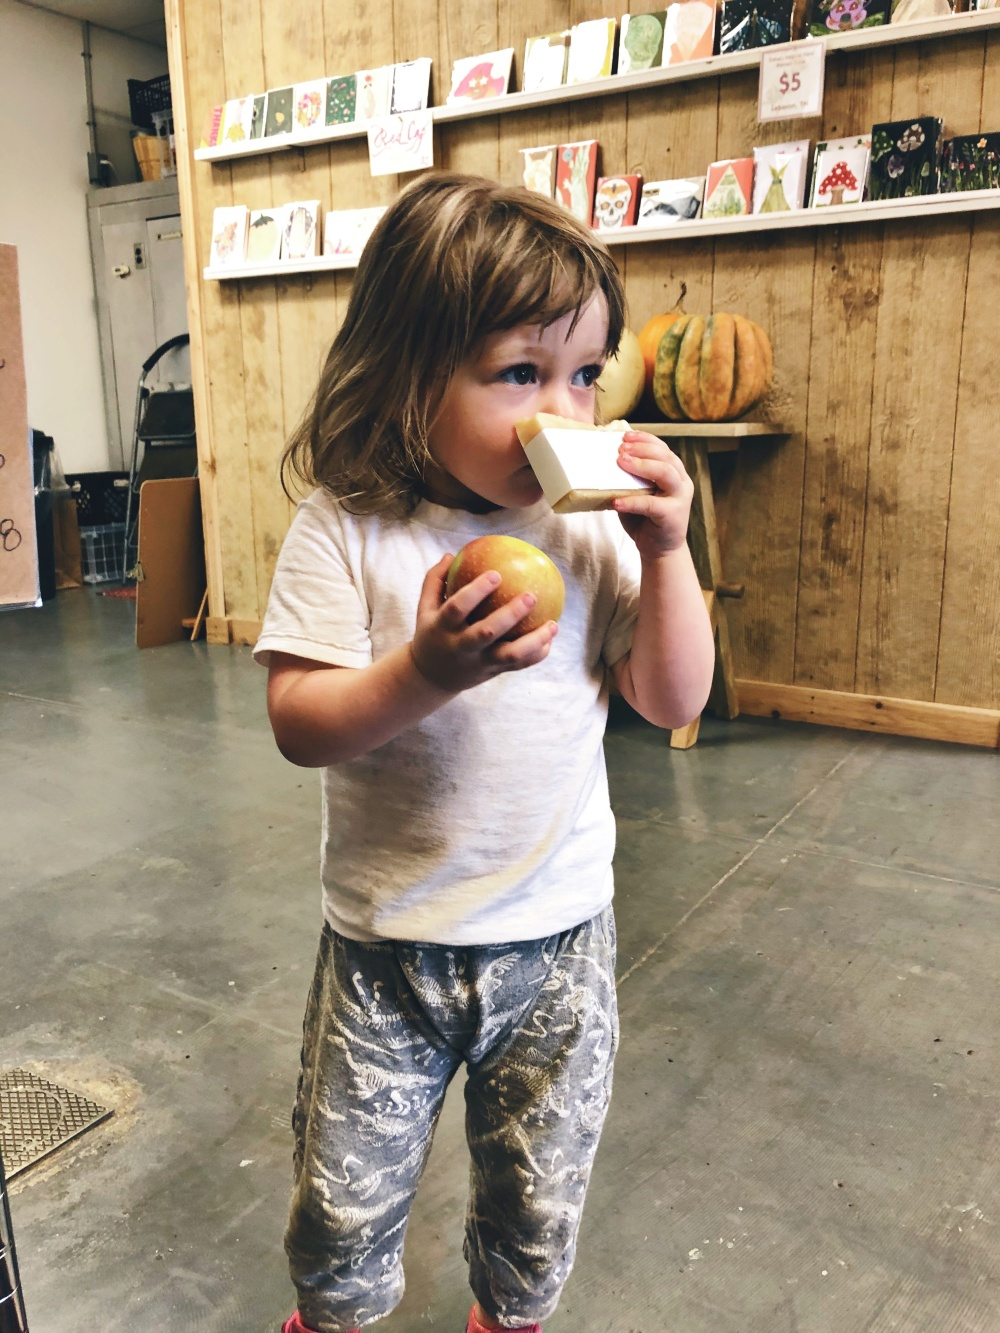 toddler standing in lifestyle grocery store Demeter's Common in Lebanon, TN holding a Rome apple and slice of handmade hand soap